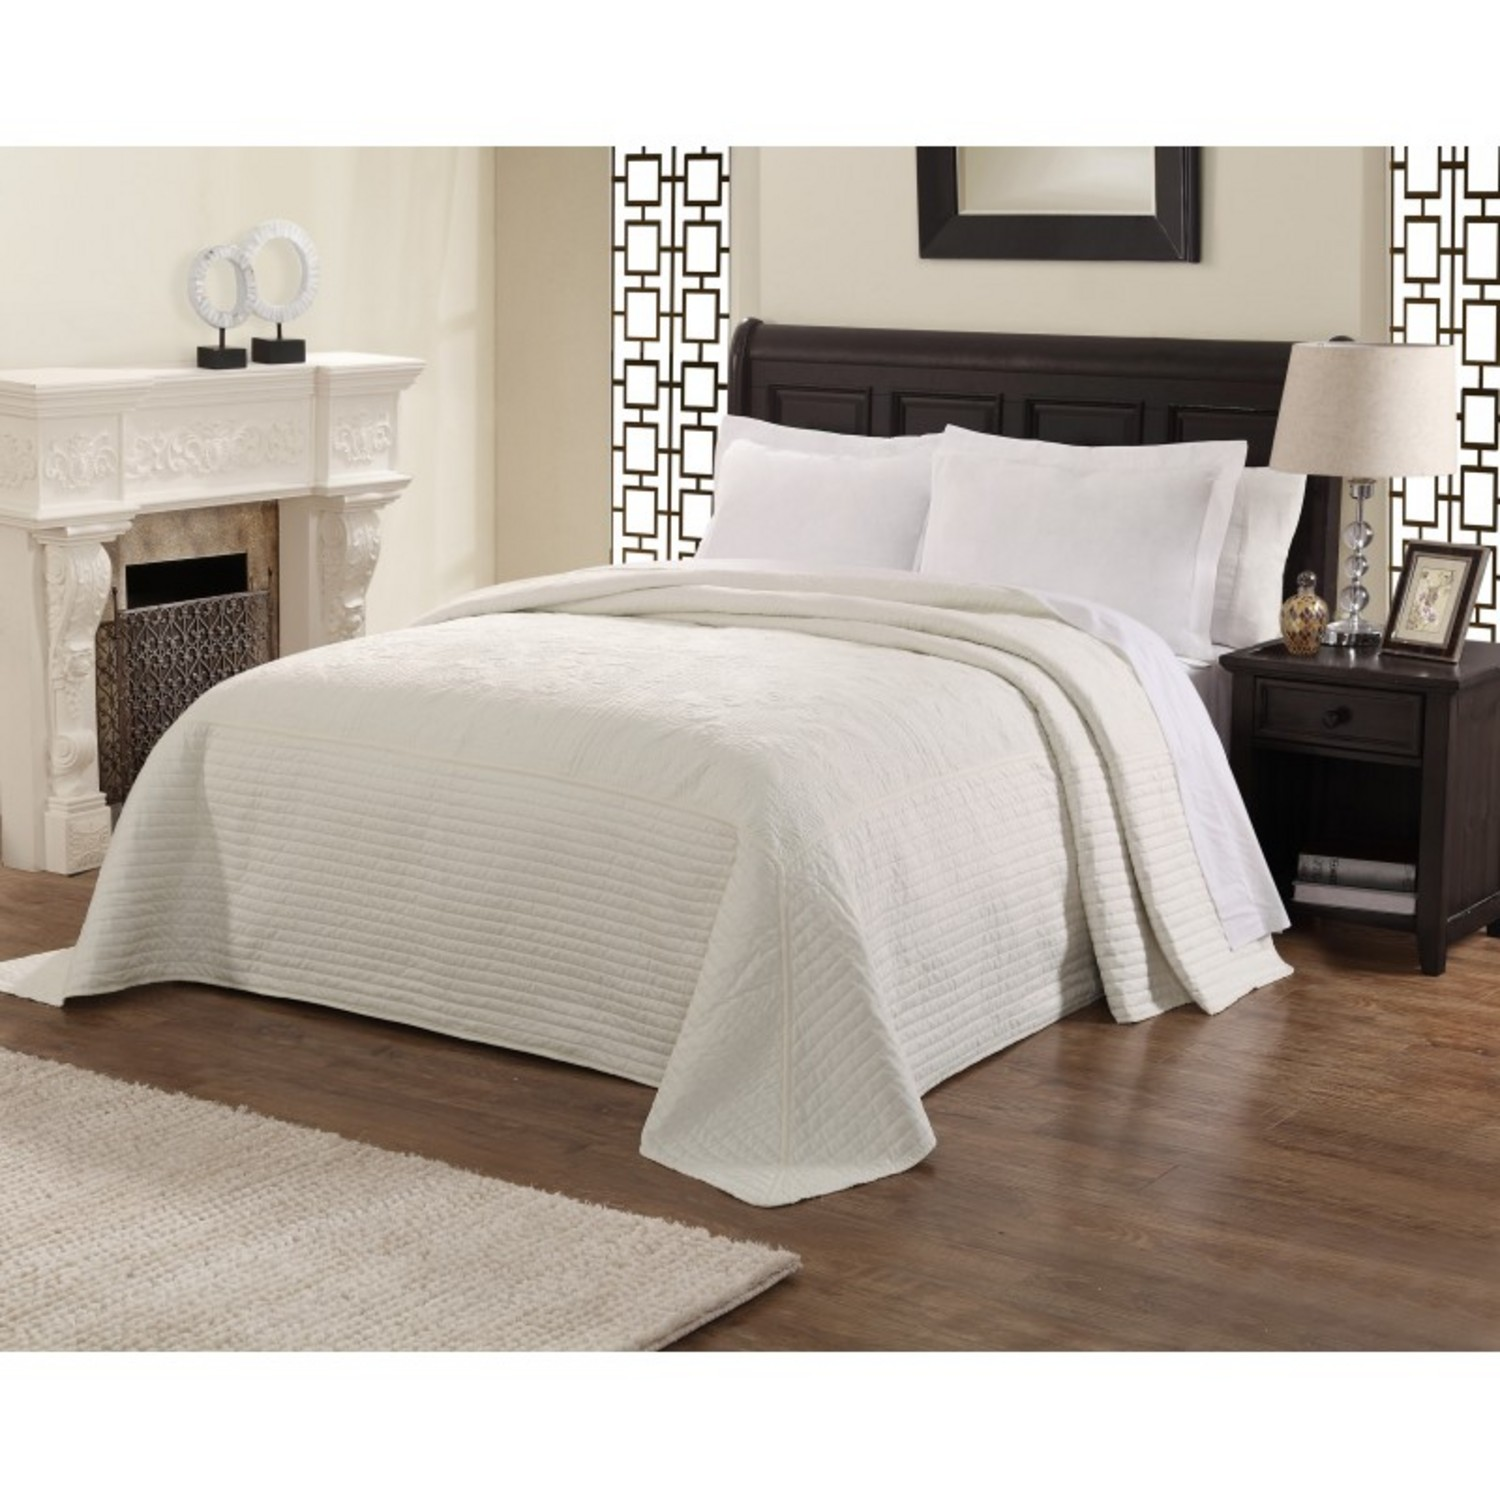 French Tile Quilted White Bedspread By American Traditions